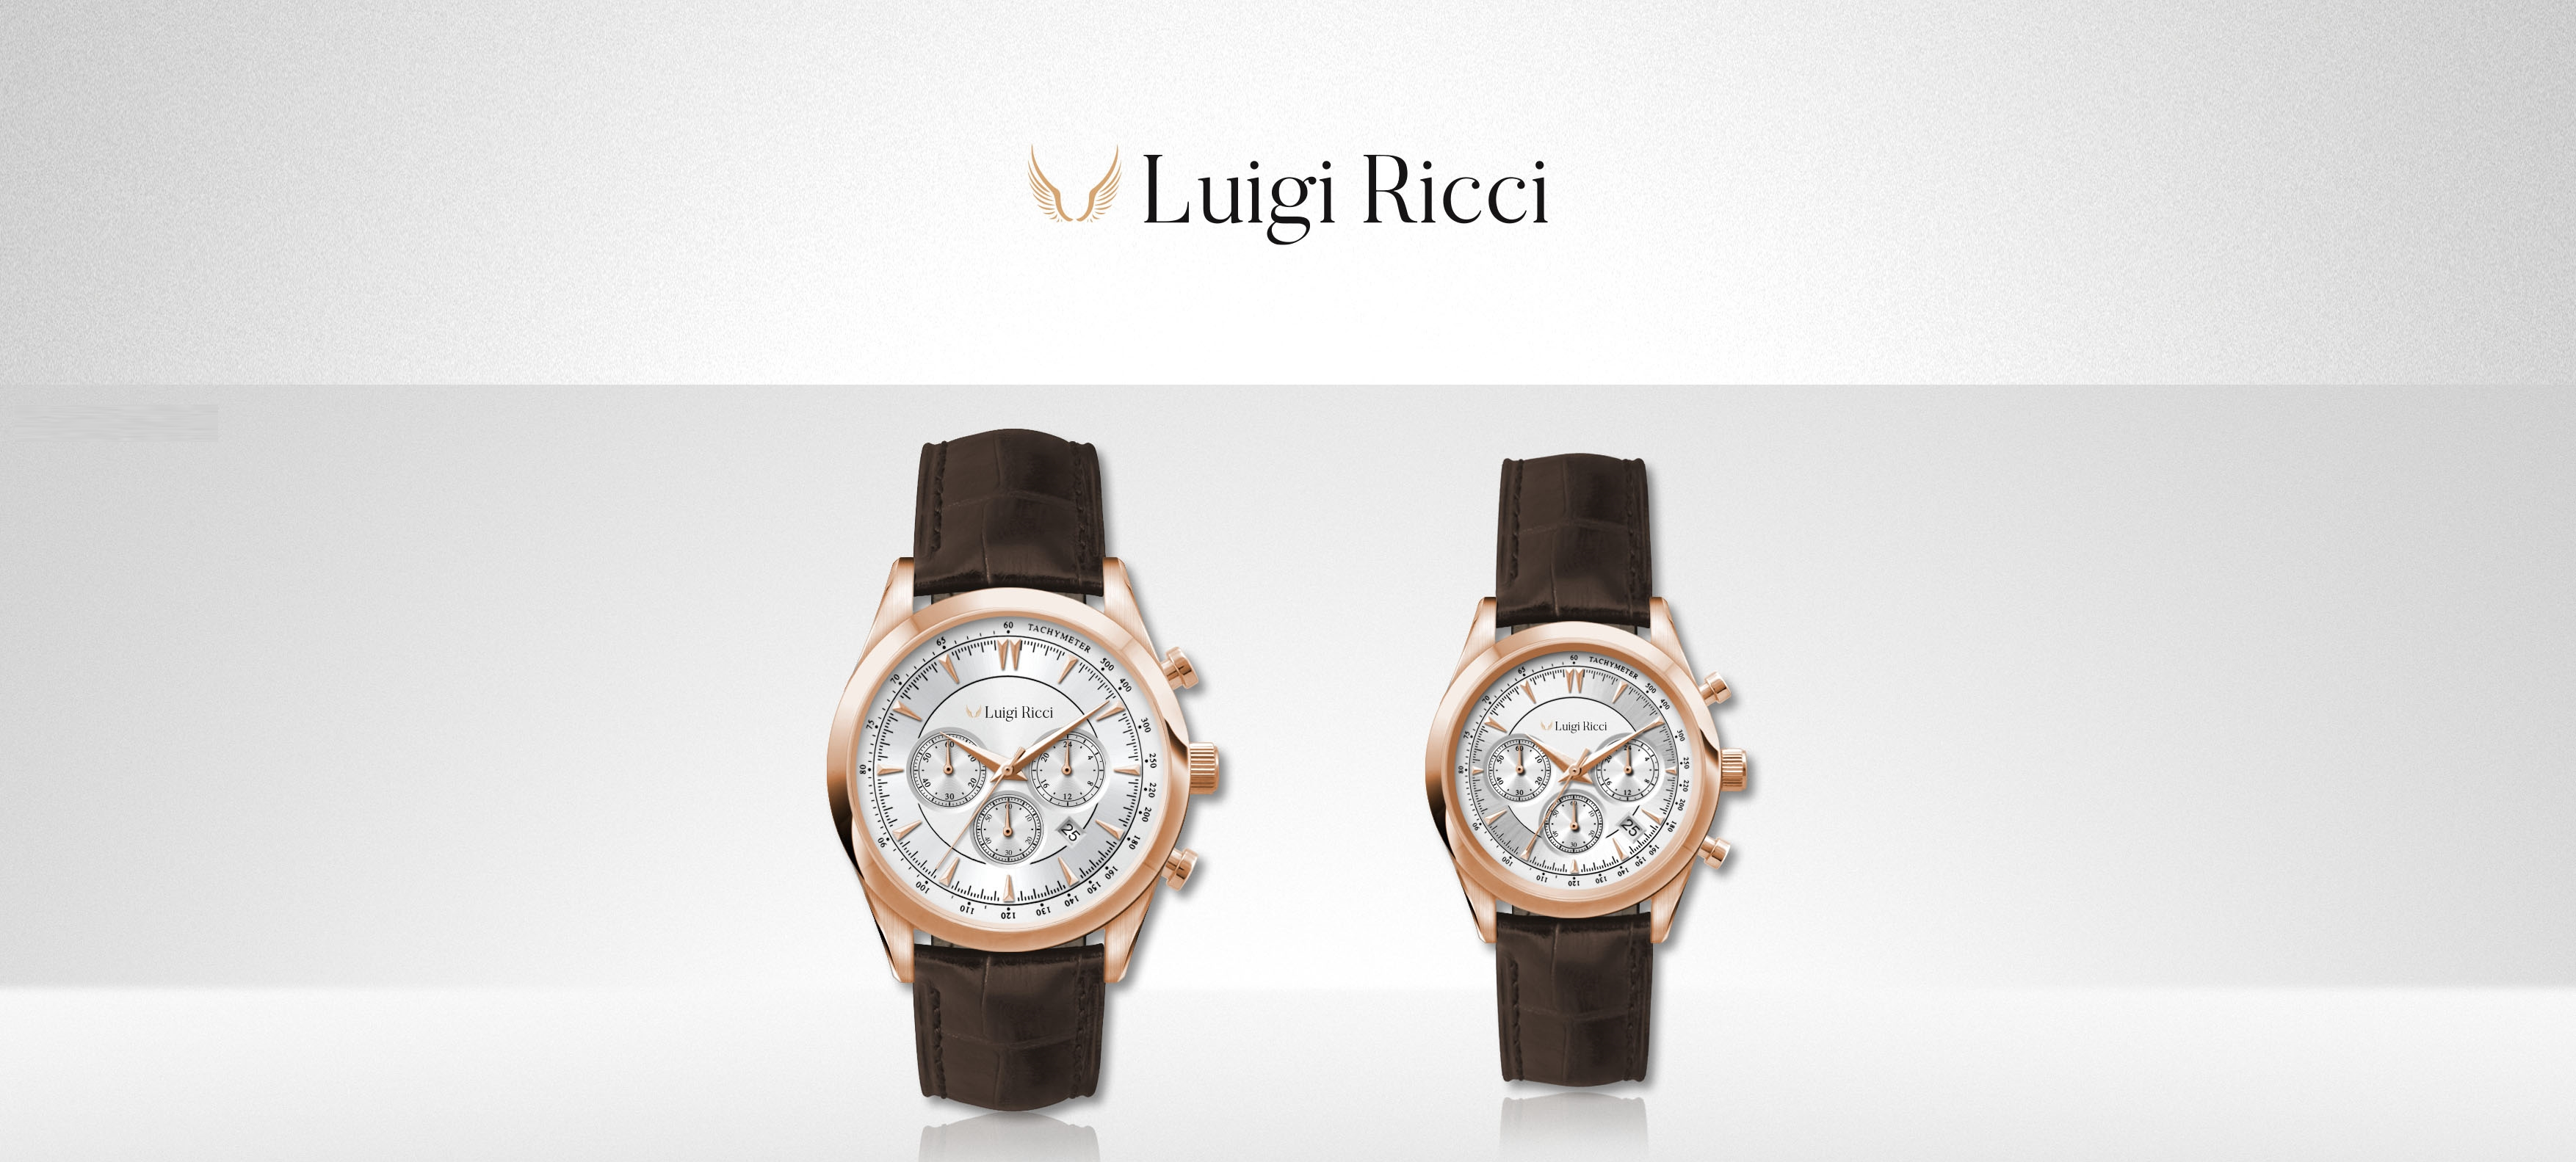 Luigi Ricci Luxuary Wrist Watches for Men and Women